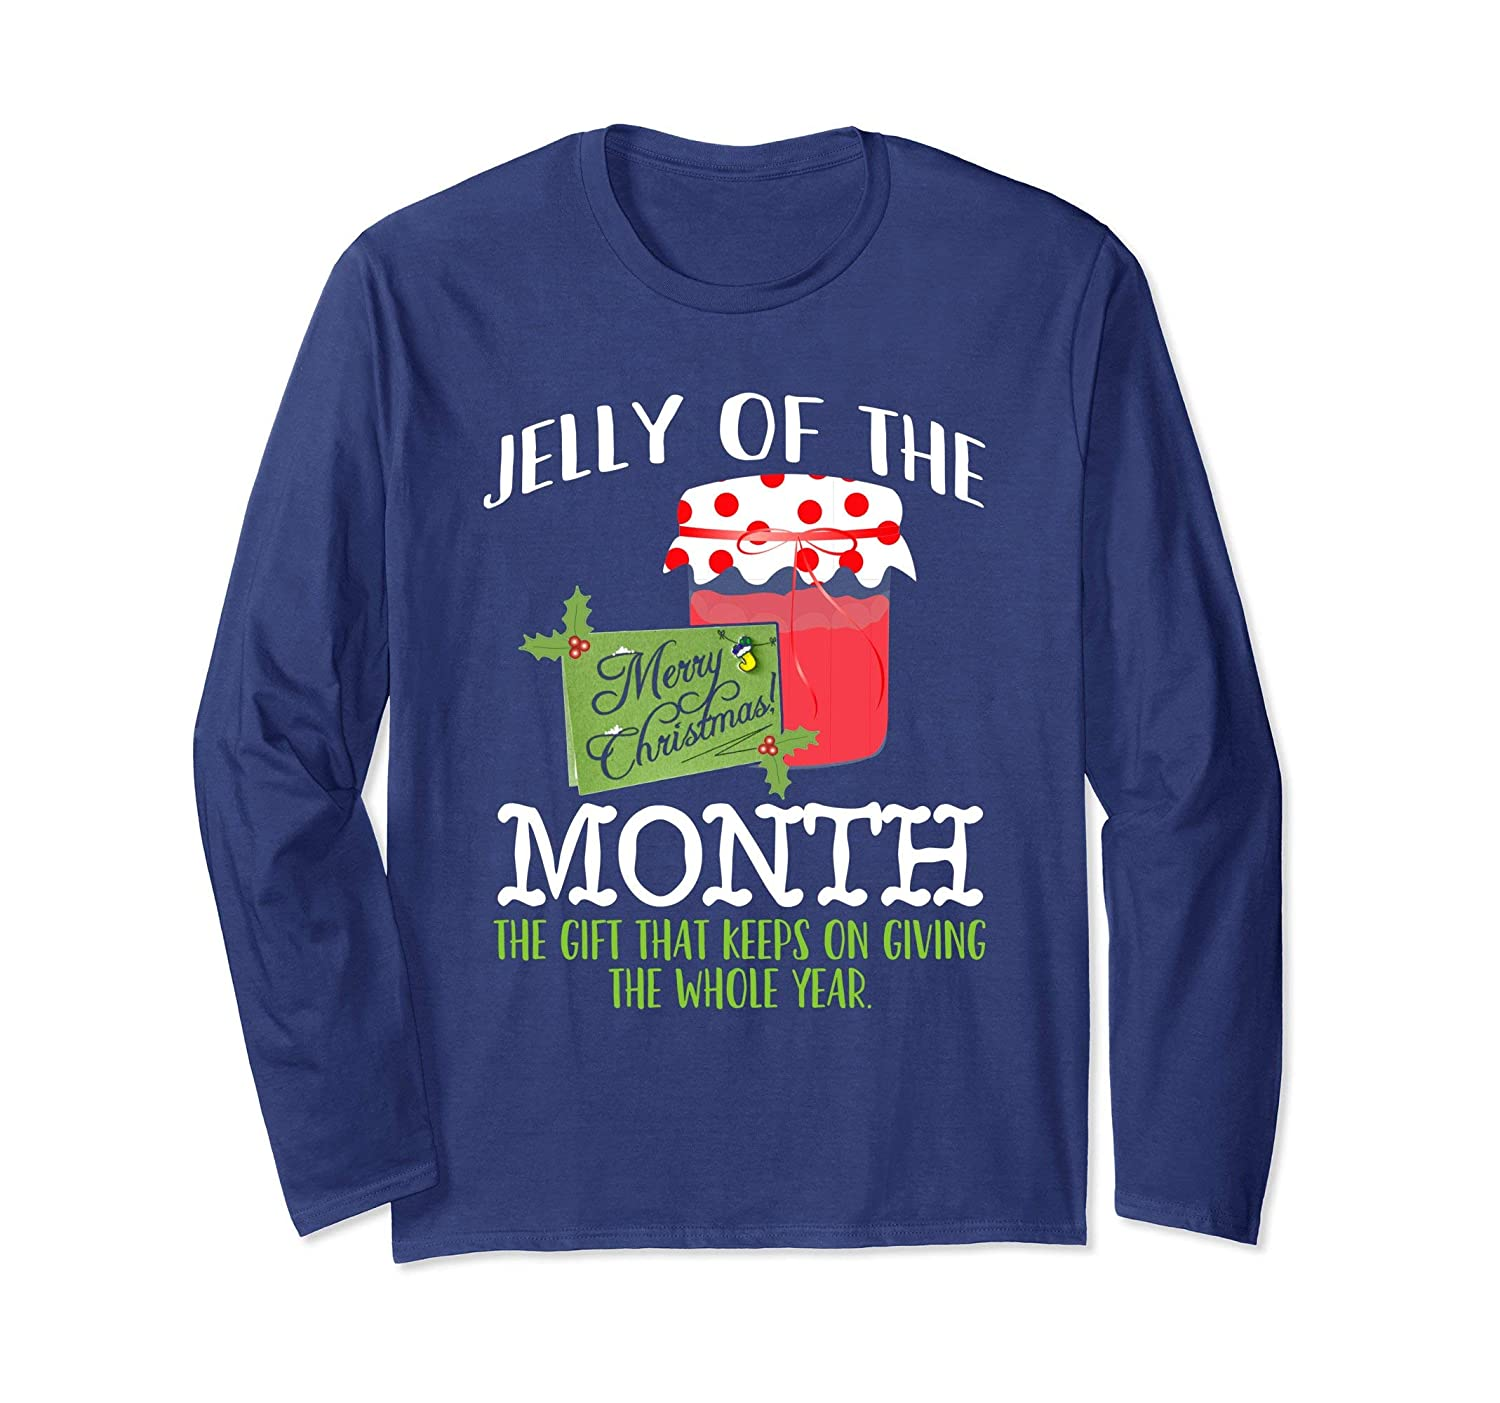 a27cb77a3 Amazon.com: Funny Christmas Shirt - Jelly of the Month Club t-shirt:  Clothing